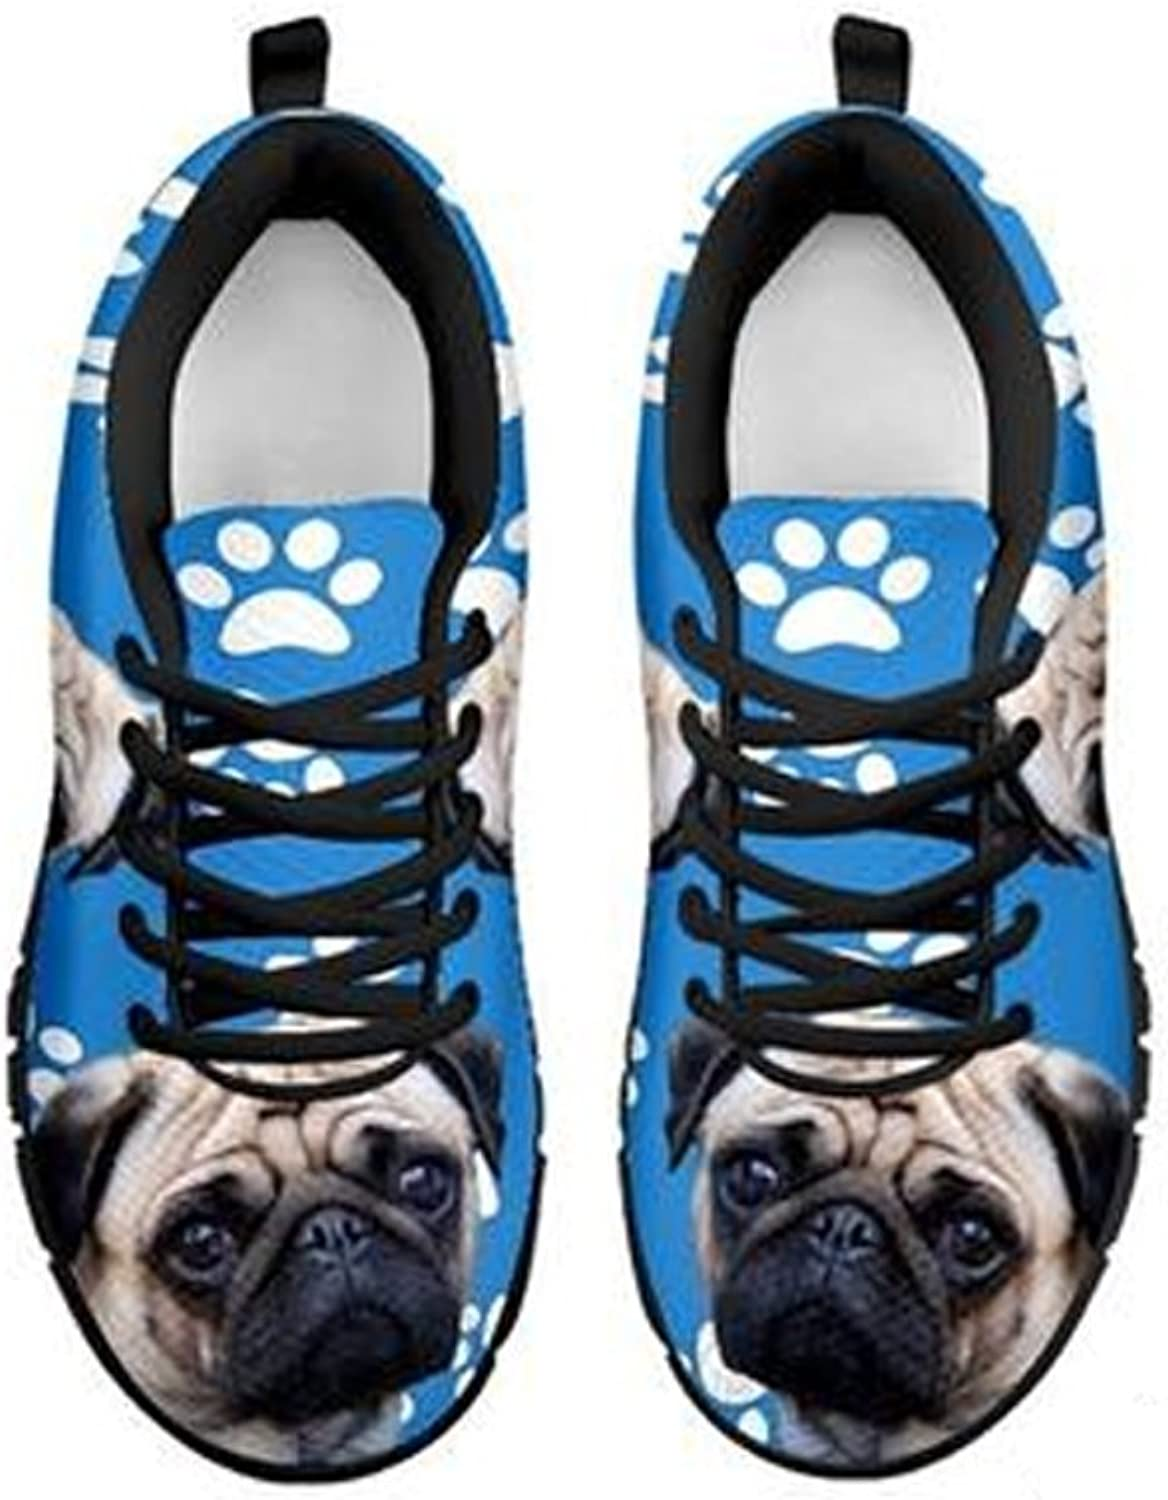 shoestup Paws Print Pug Dog Print Men's Casual Running shoes White